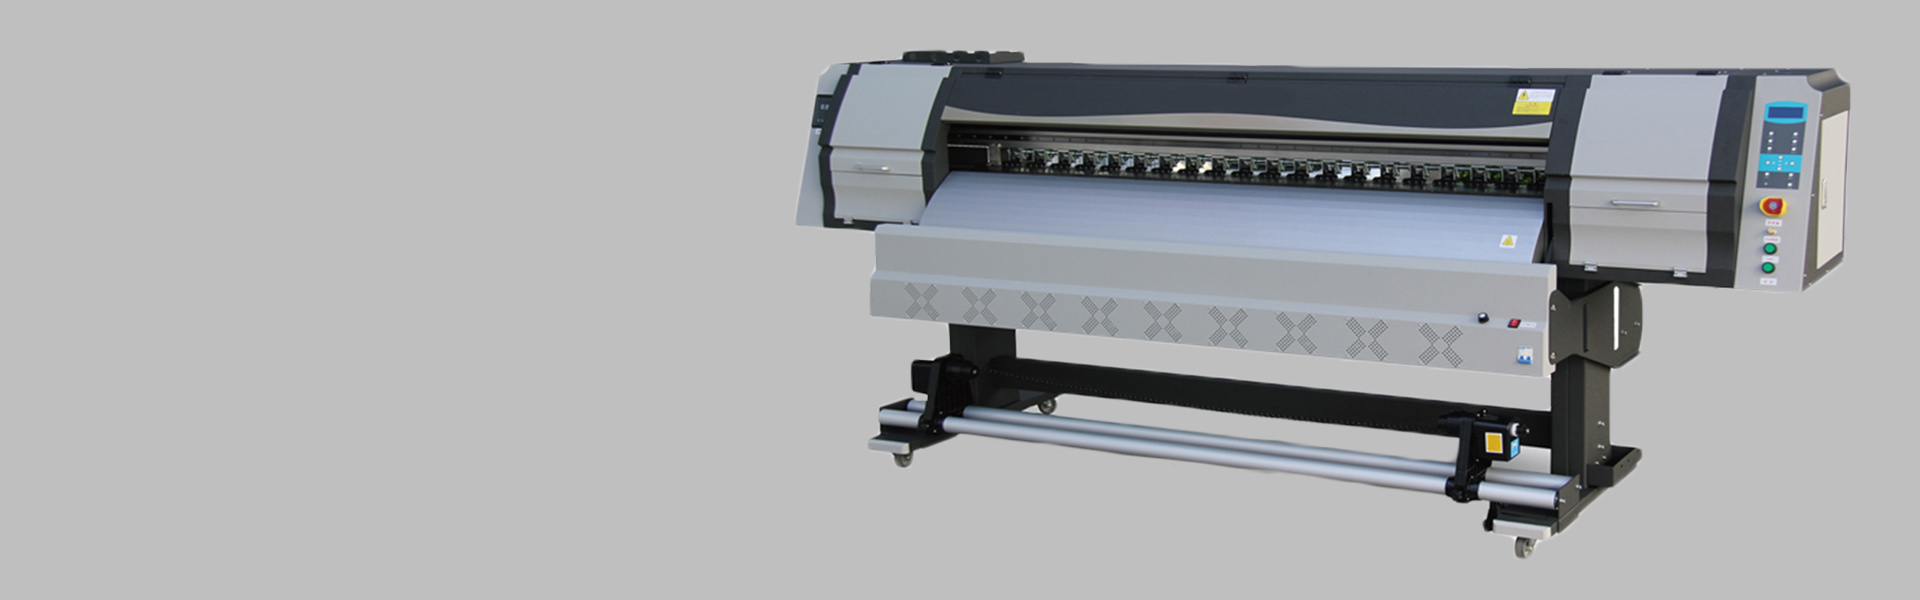 dye sublimation equipment